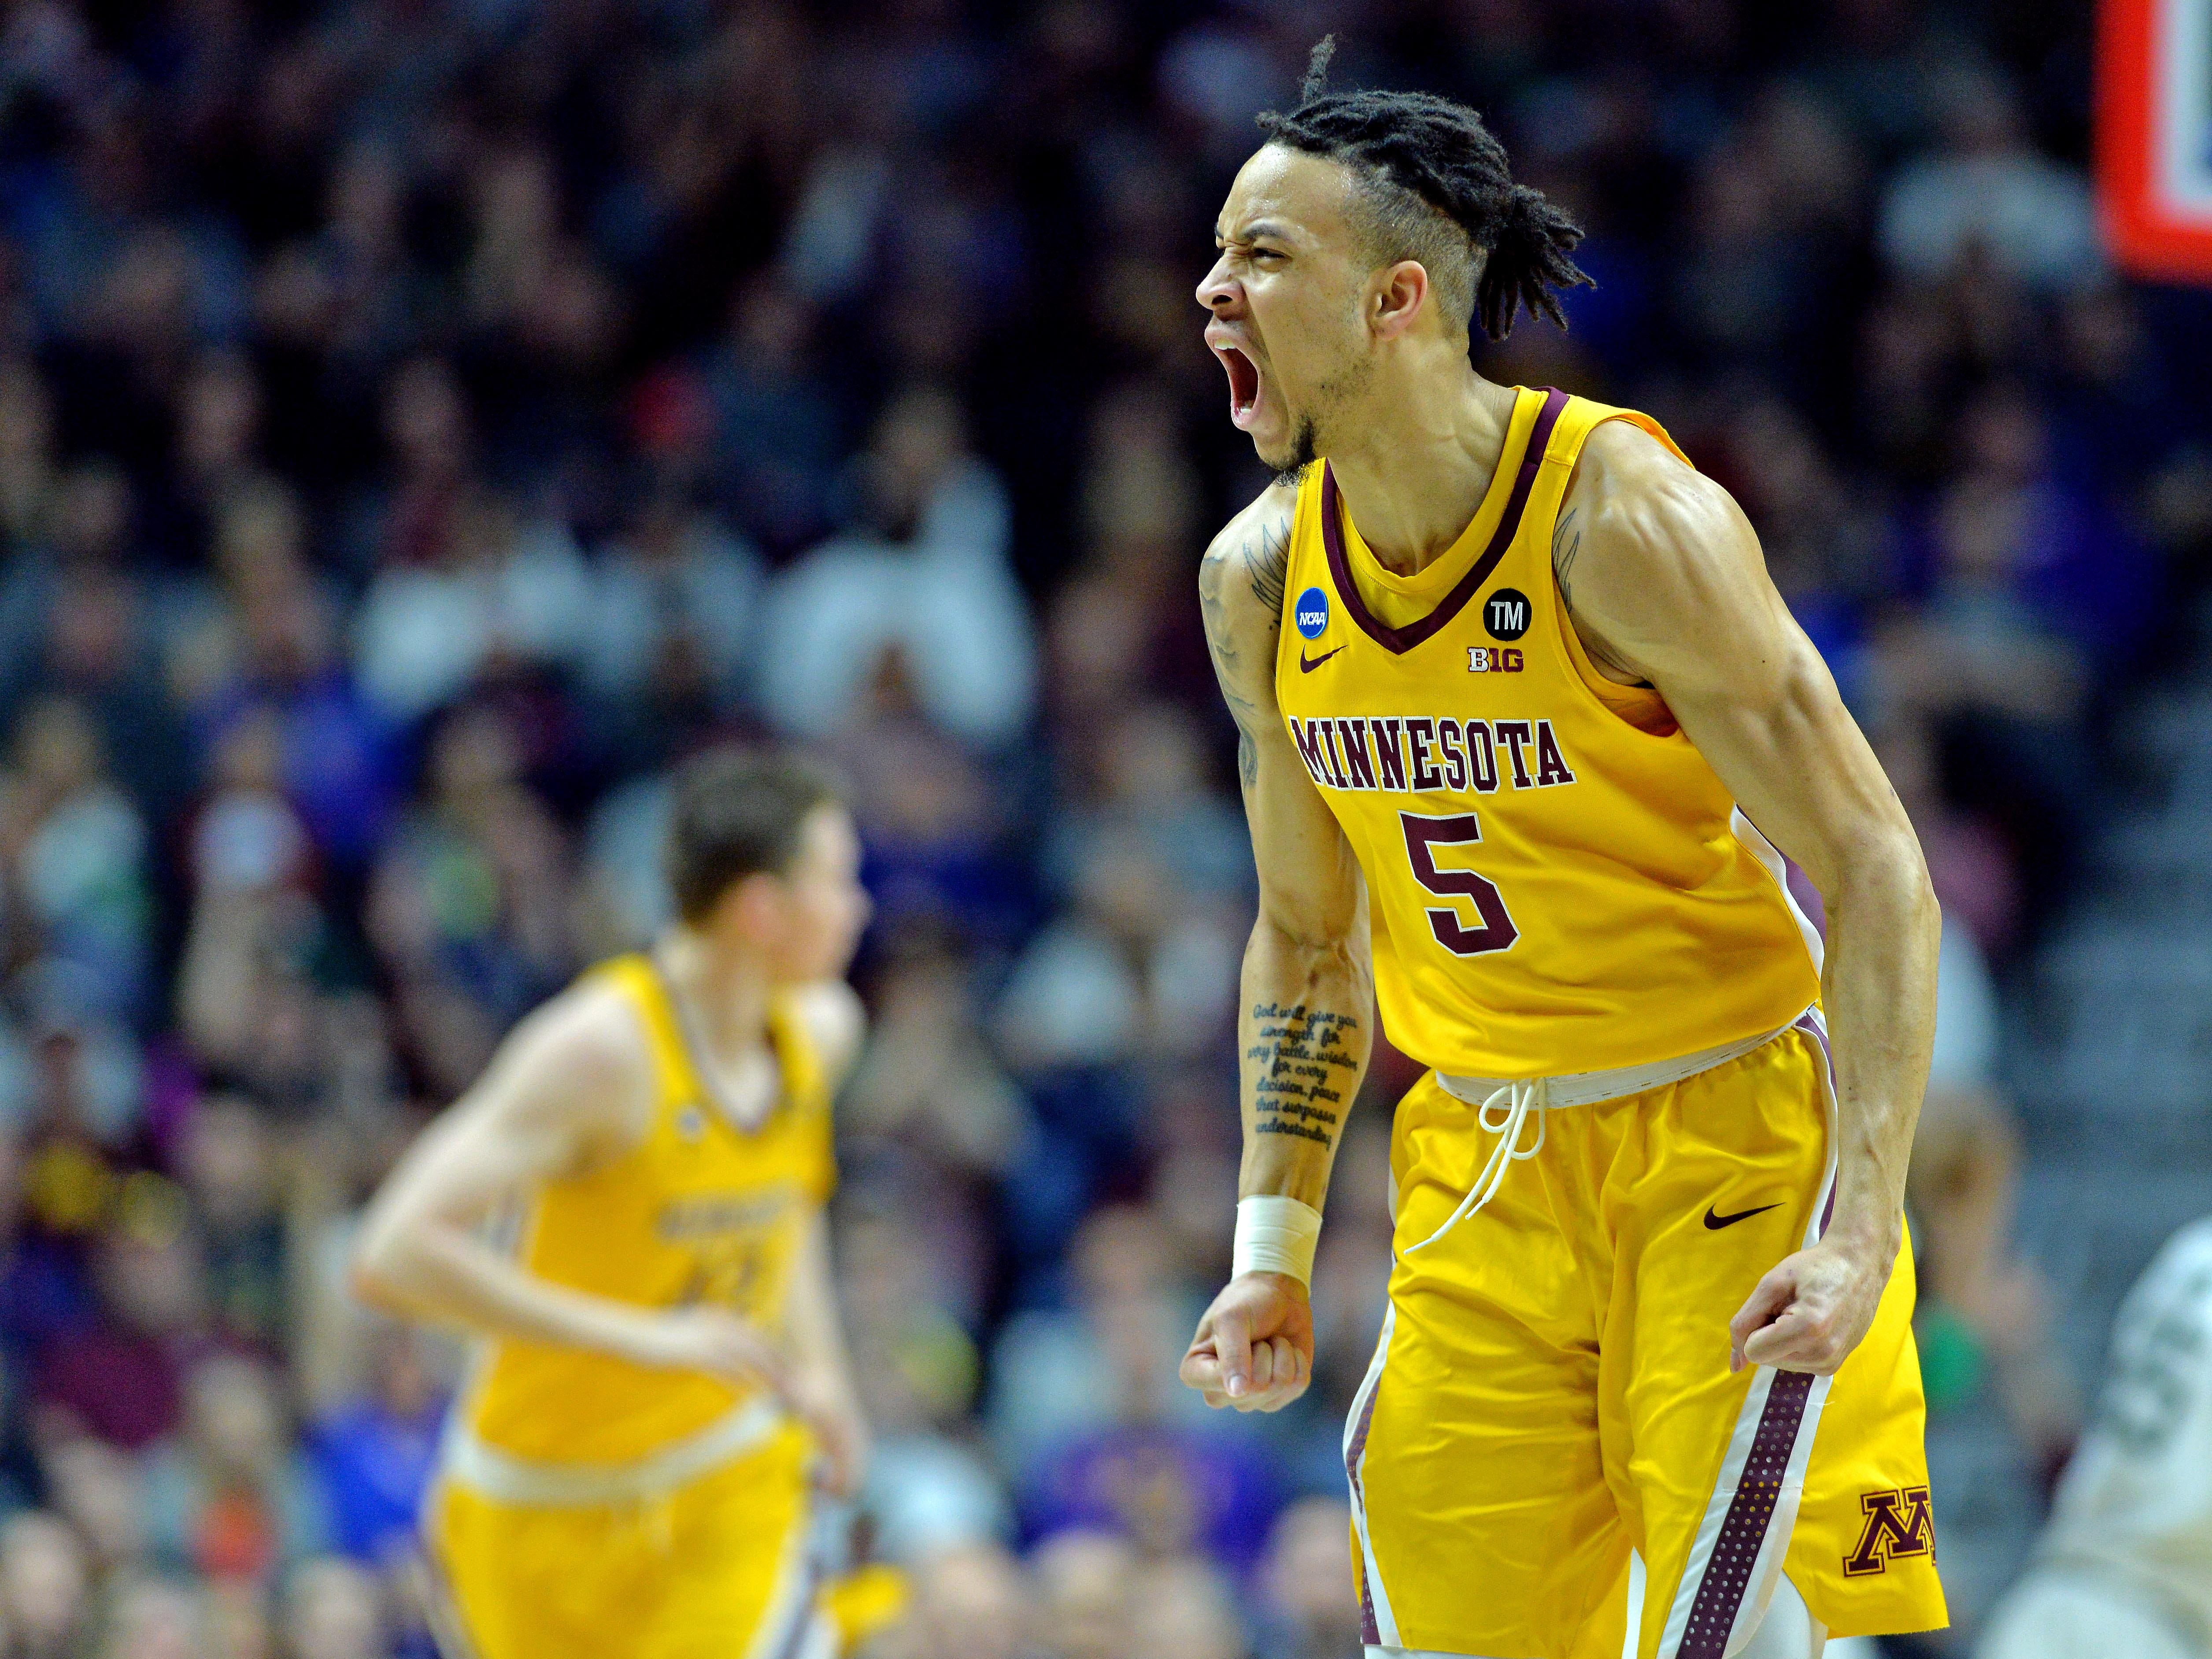 Mar 23, 2019; Des Moines, IA, United States; Minnesota Golden Gophers guard Amir Coffey (5) reacts during the first half against the Michigan State Spartans in the second round of the 2019 NCAA Tournament at Wells Fargo Arena. Mandatory Credit: Jeffrey Becker-USA TODAY Sports